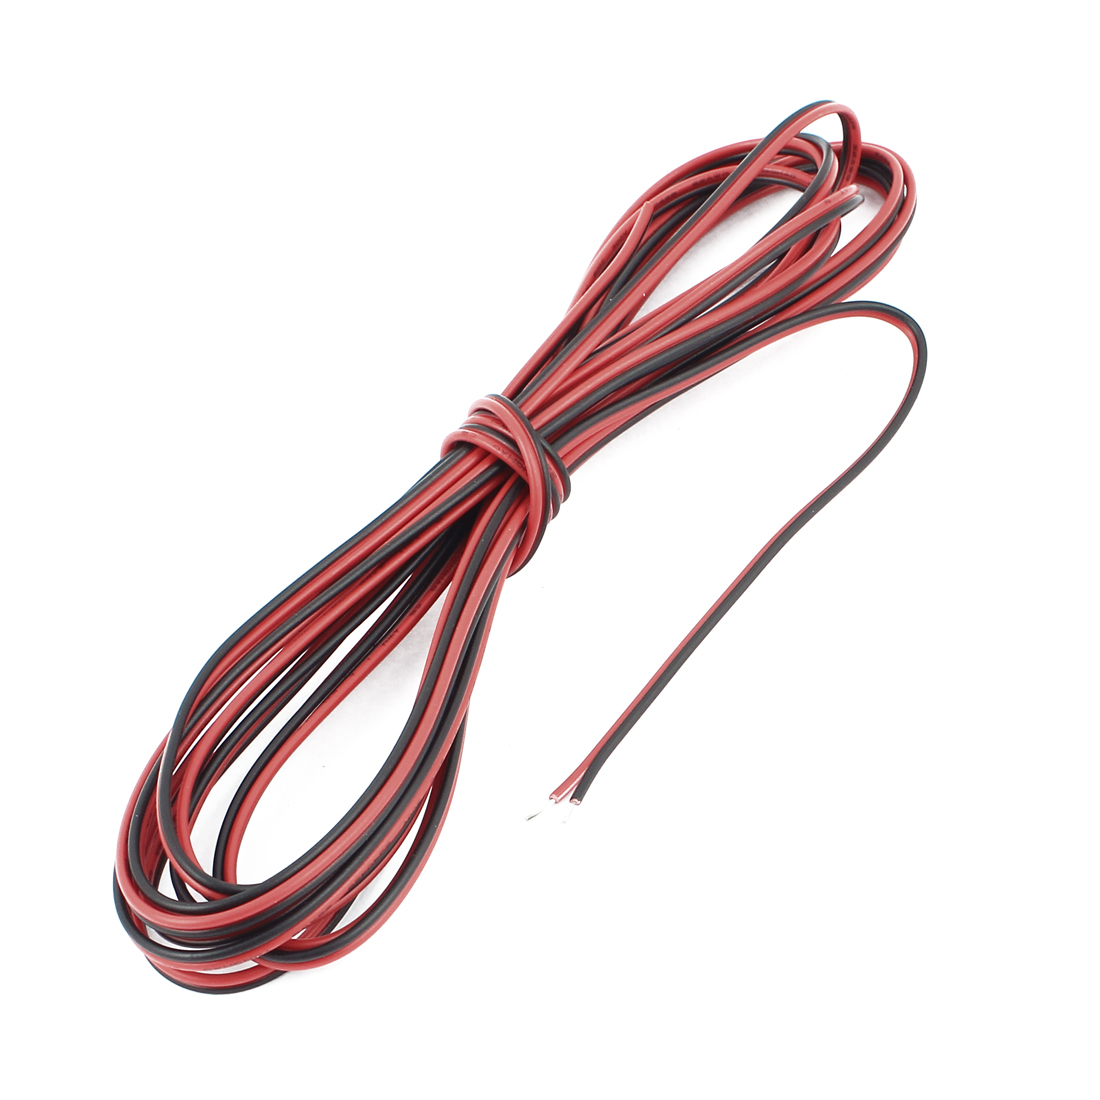 22AWG Indoor Outdoor PVC Insulated Electrical Wire Cable Black Red 4 Meters